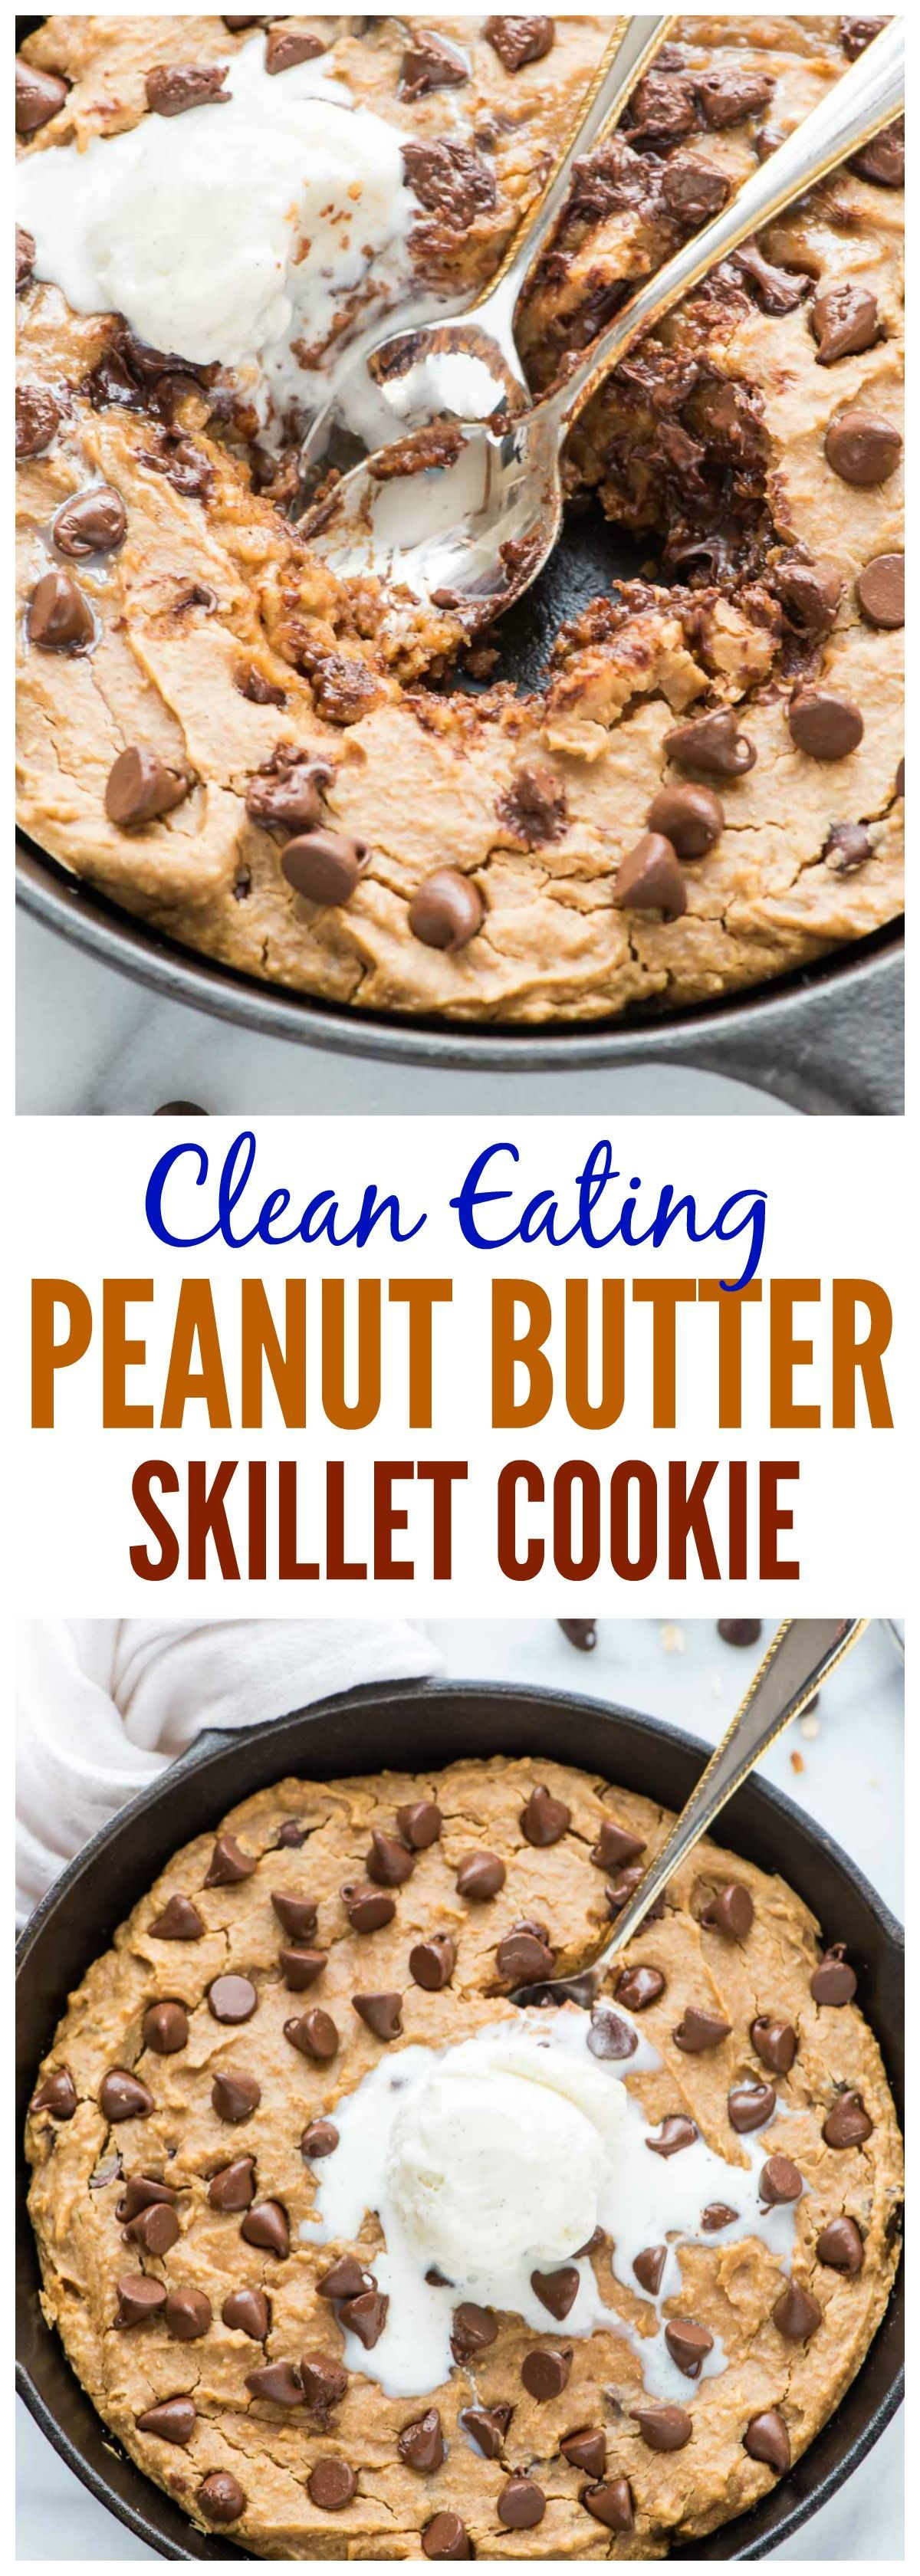 Eating Desserts Clean Eating Peanut Butter Skillet Cookie NO butter sugar or oil and it tastes incredible This is the BEST healthy peanut butter cookie recipe Dairy free...